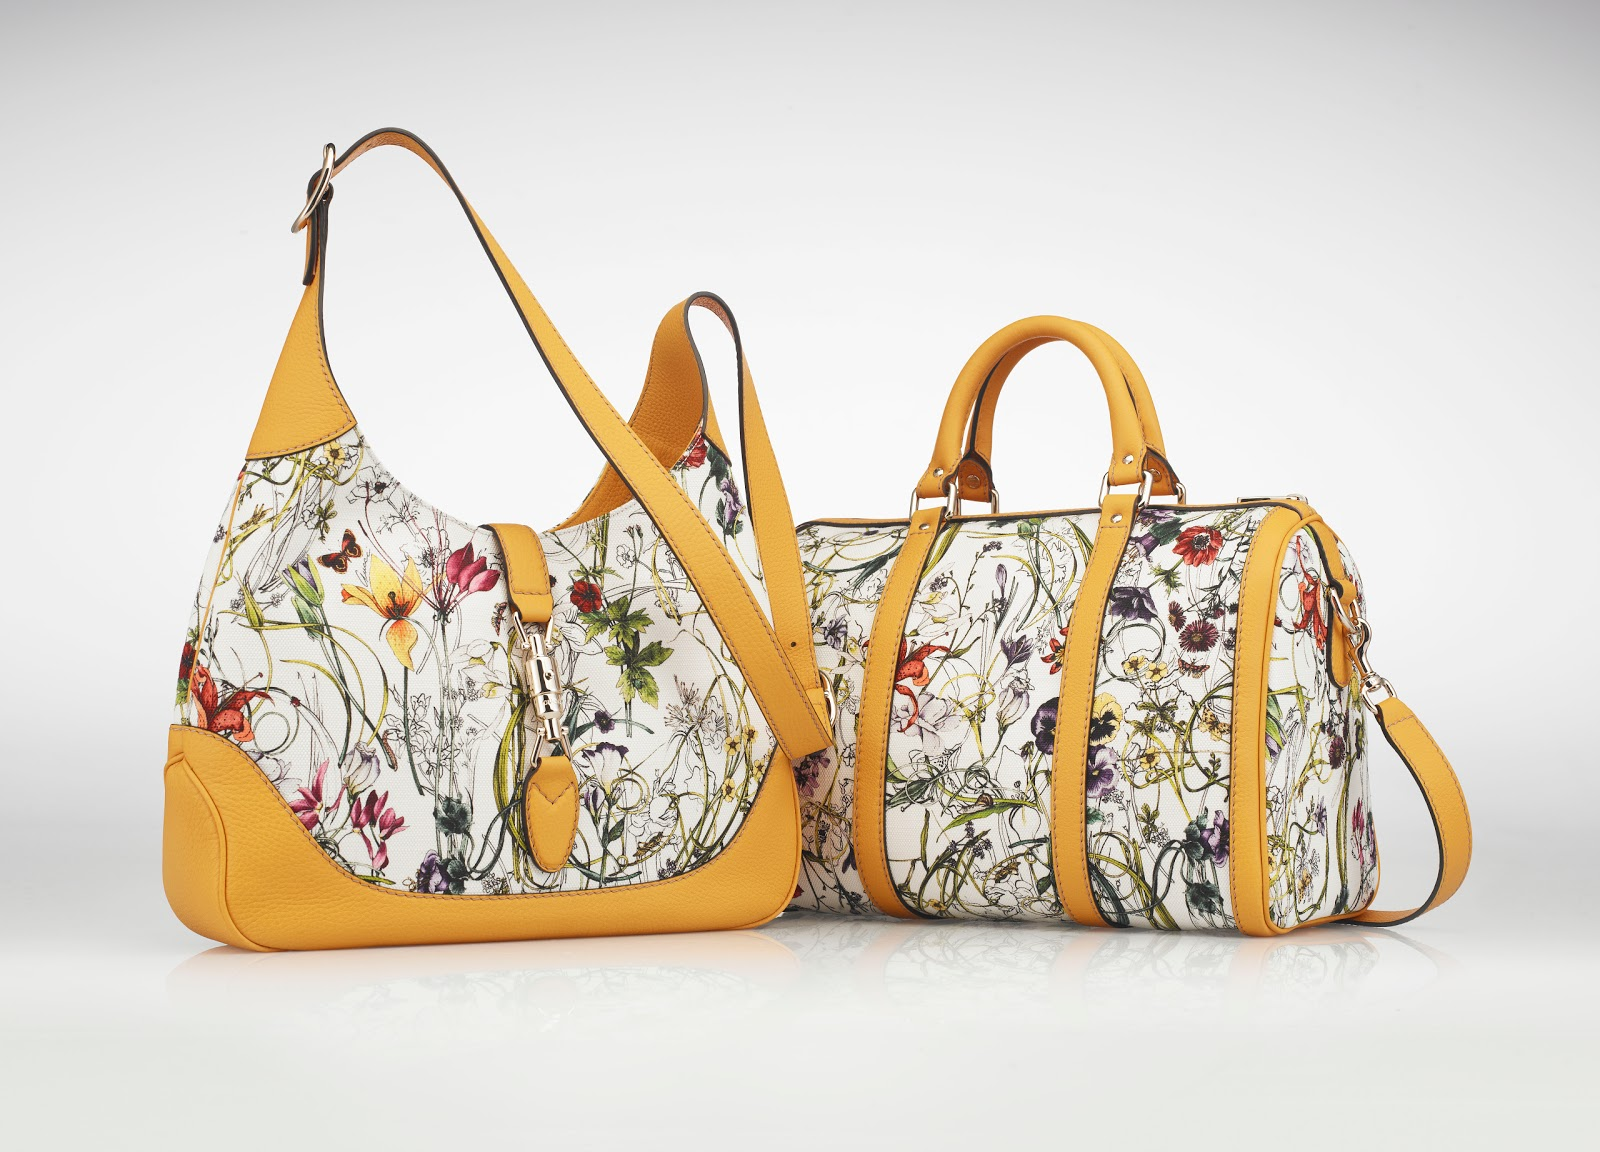 Gucci's Singapore-Exclusive Limited Edition Flora Bags